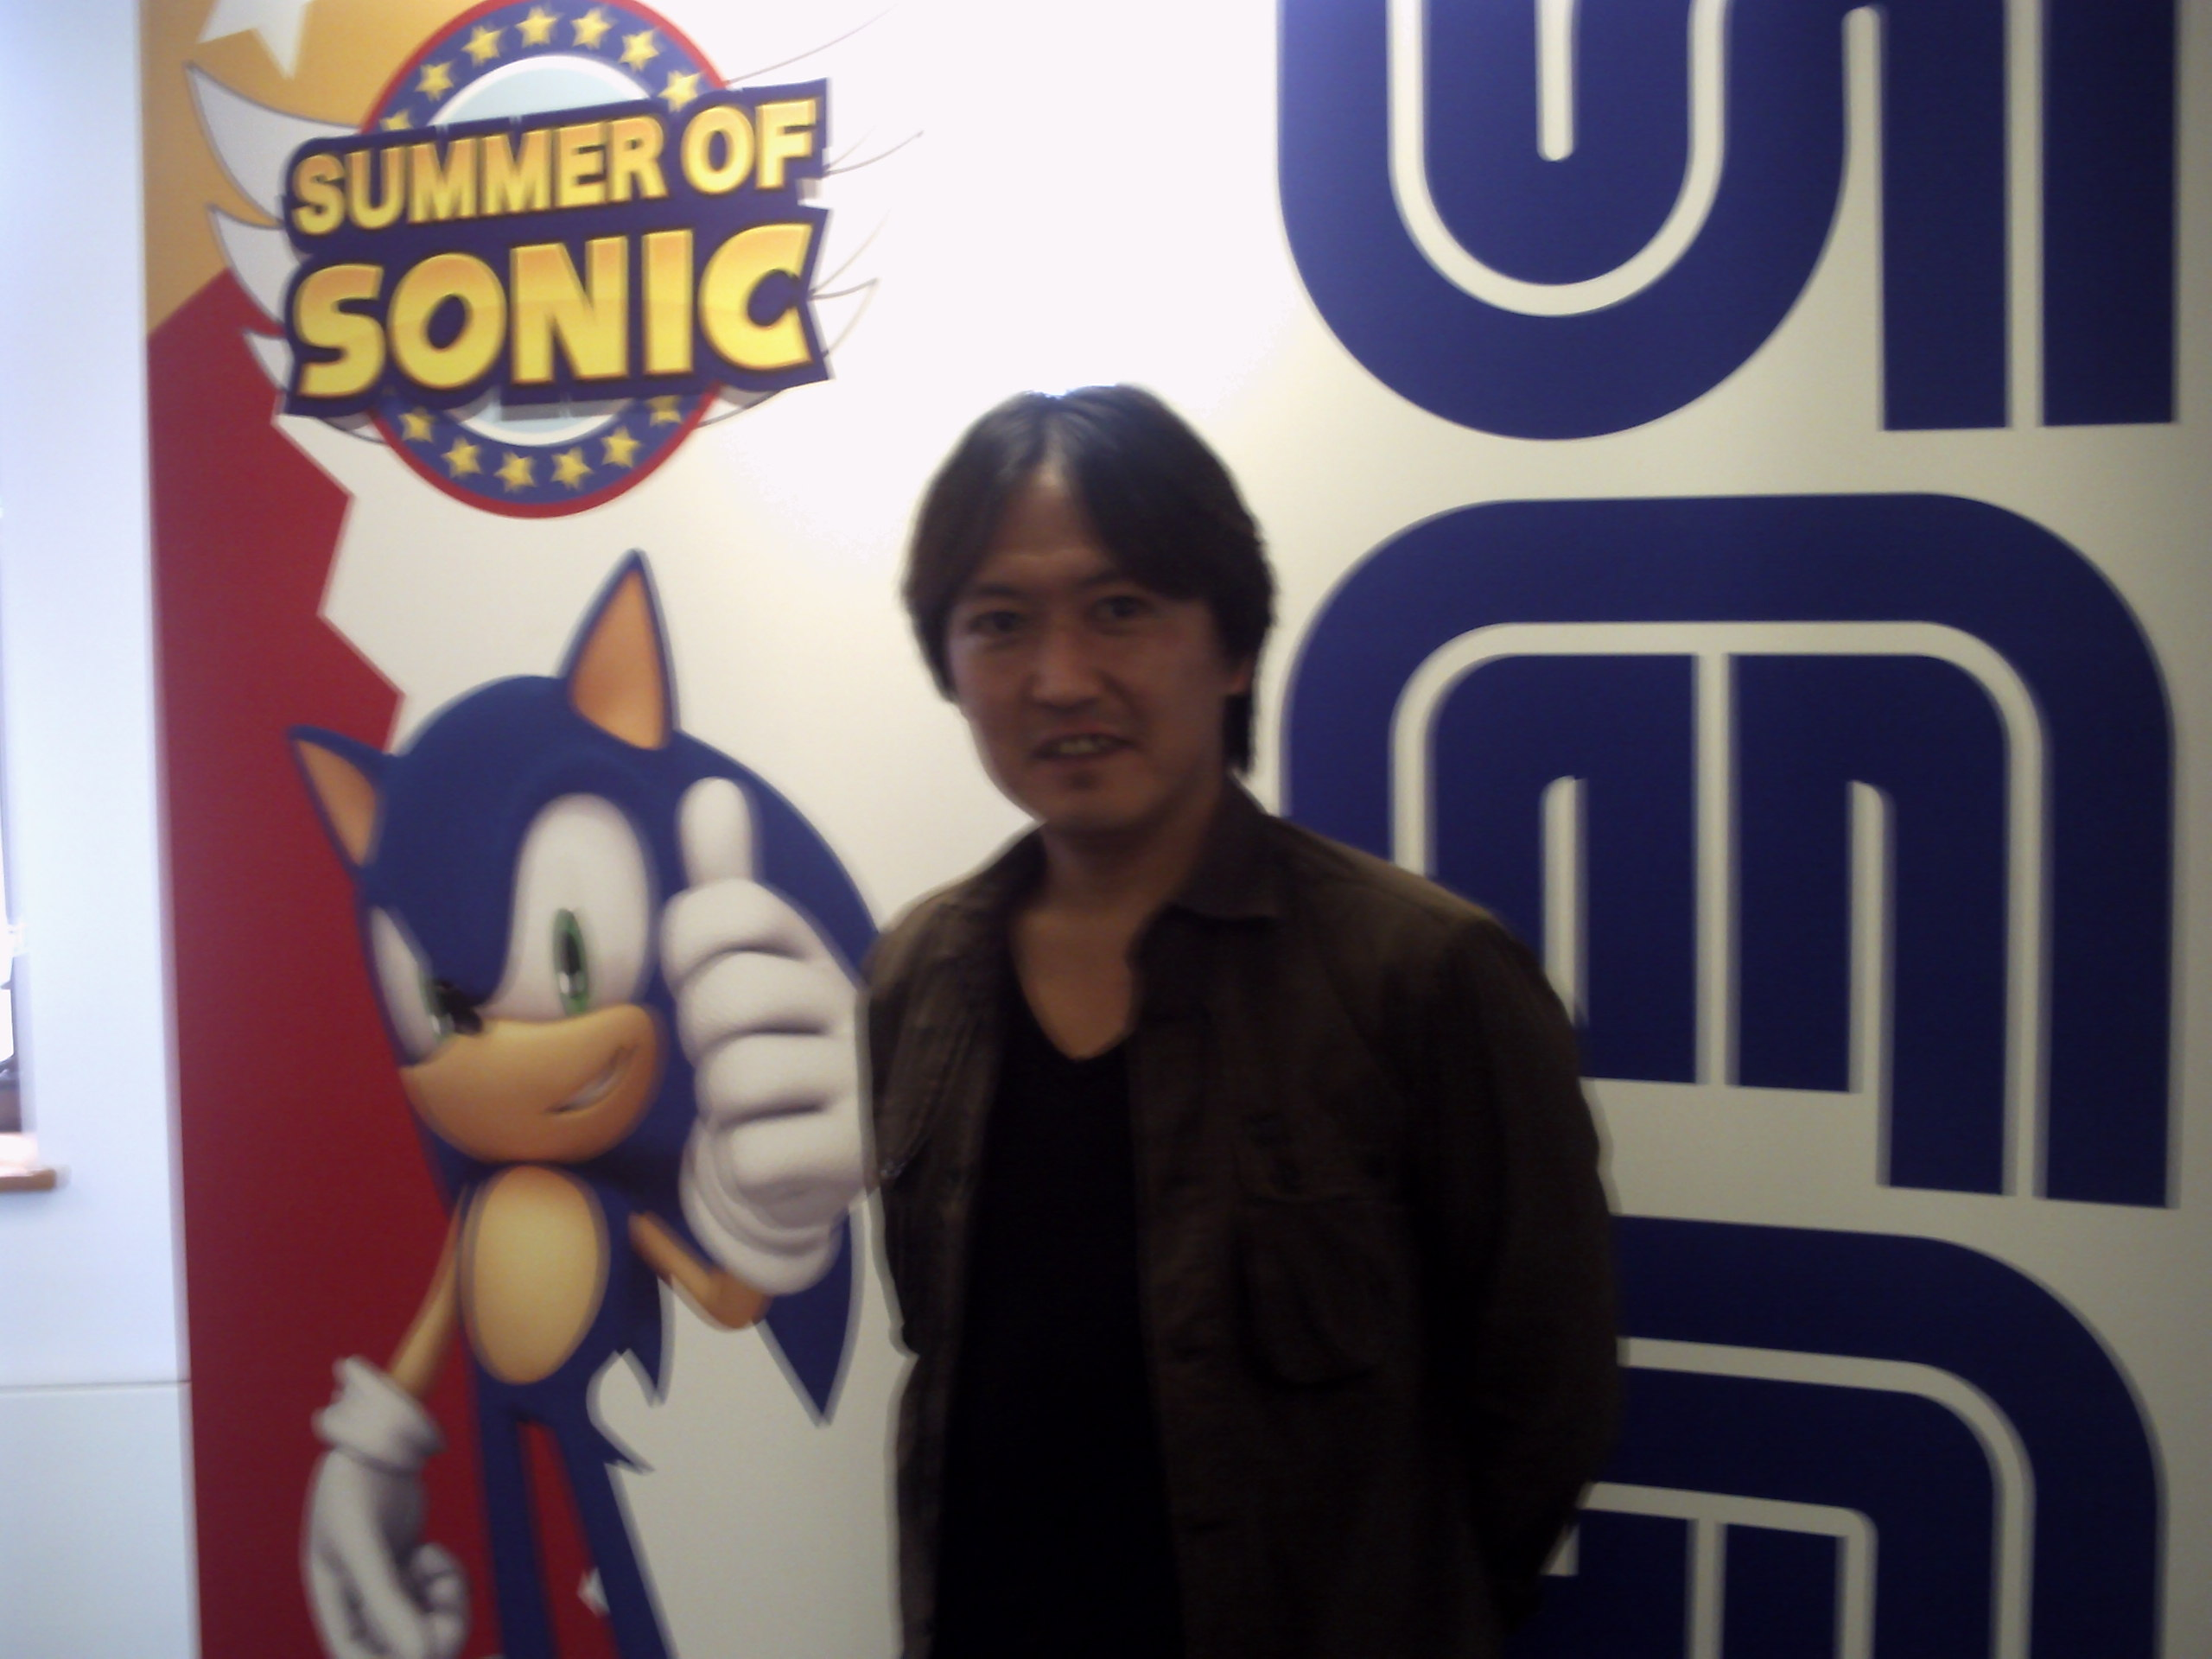 Takashi Iizuka at Summer of Sonic 2012